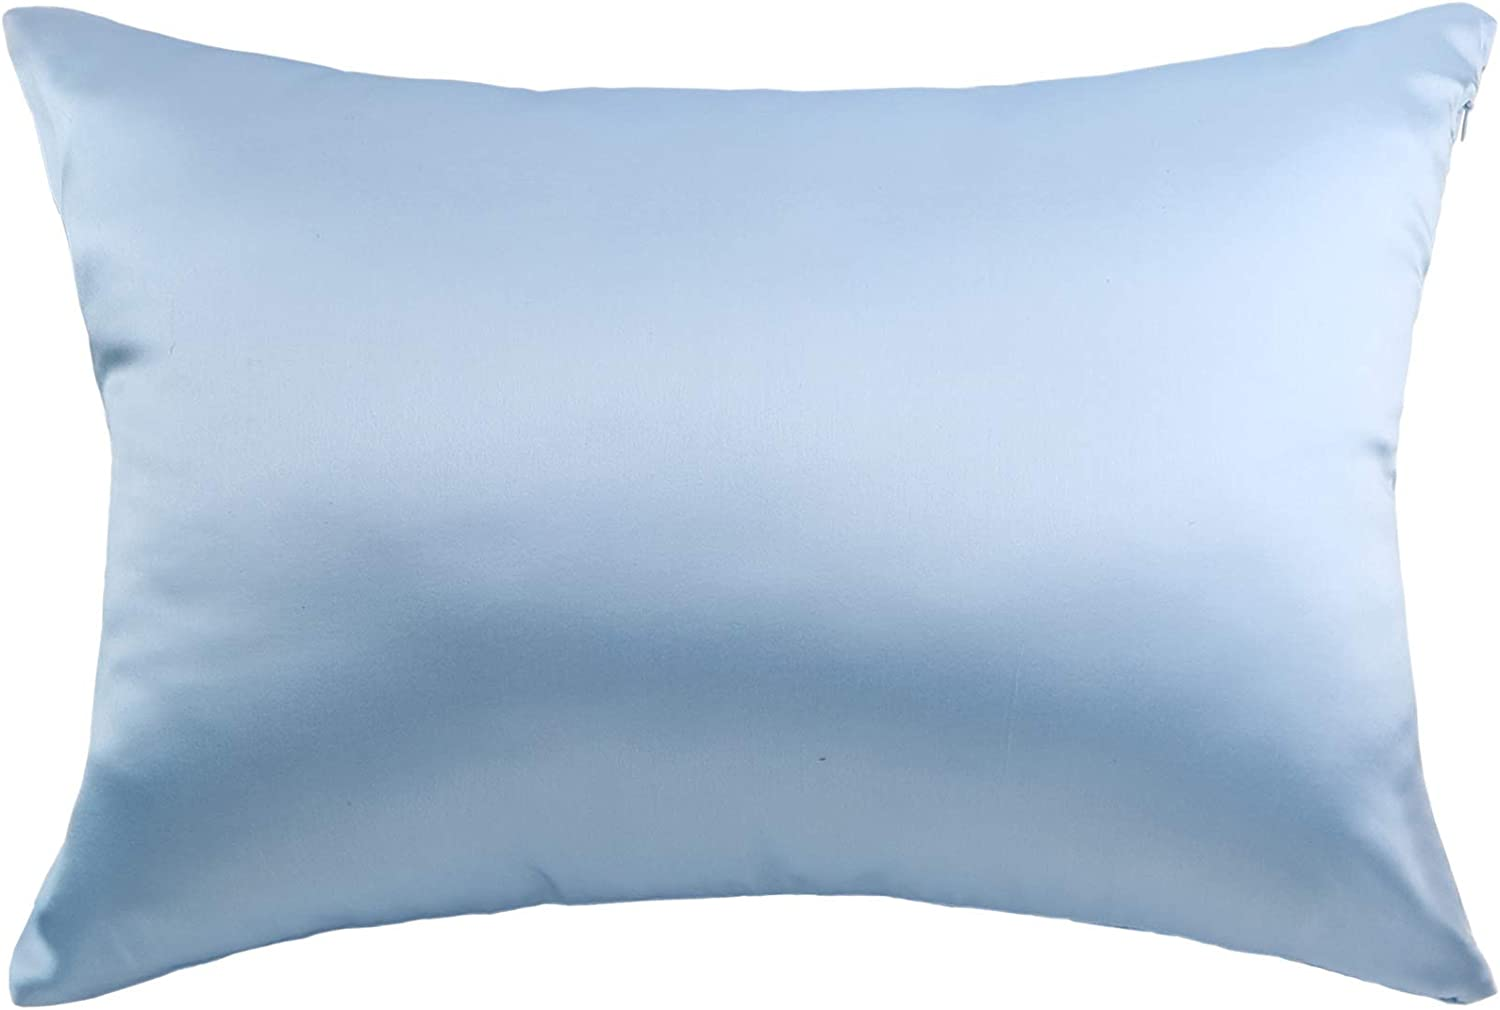 Hodeco Silk Pillowcase Sky Blue 14x20 Double Sides 100% Mulberry Silk 19 Momme Thick Nature Silk Pillow Cover for Skin and Hair Pillow Sham Cover, Toddler Size 36x51cm Light Blue, 1 Piece